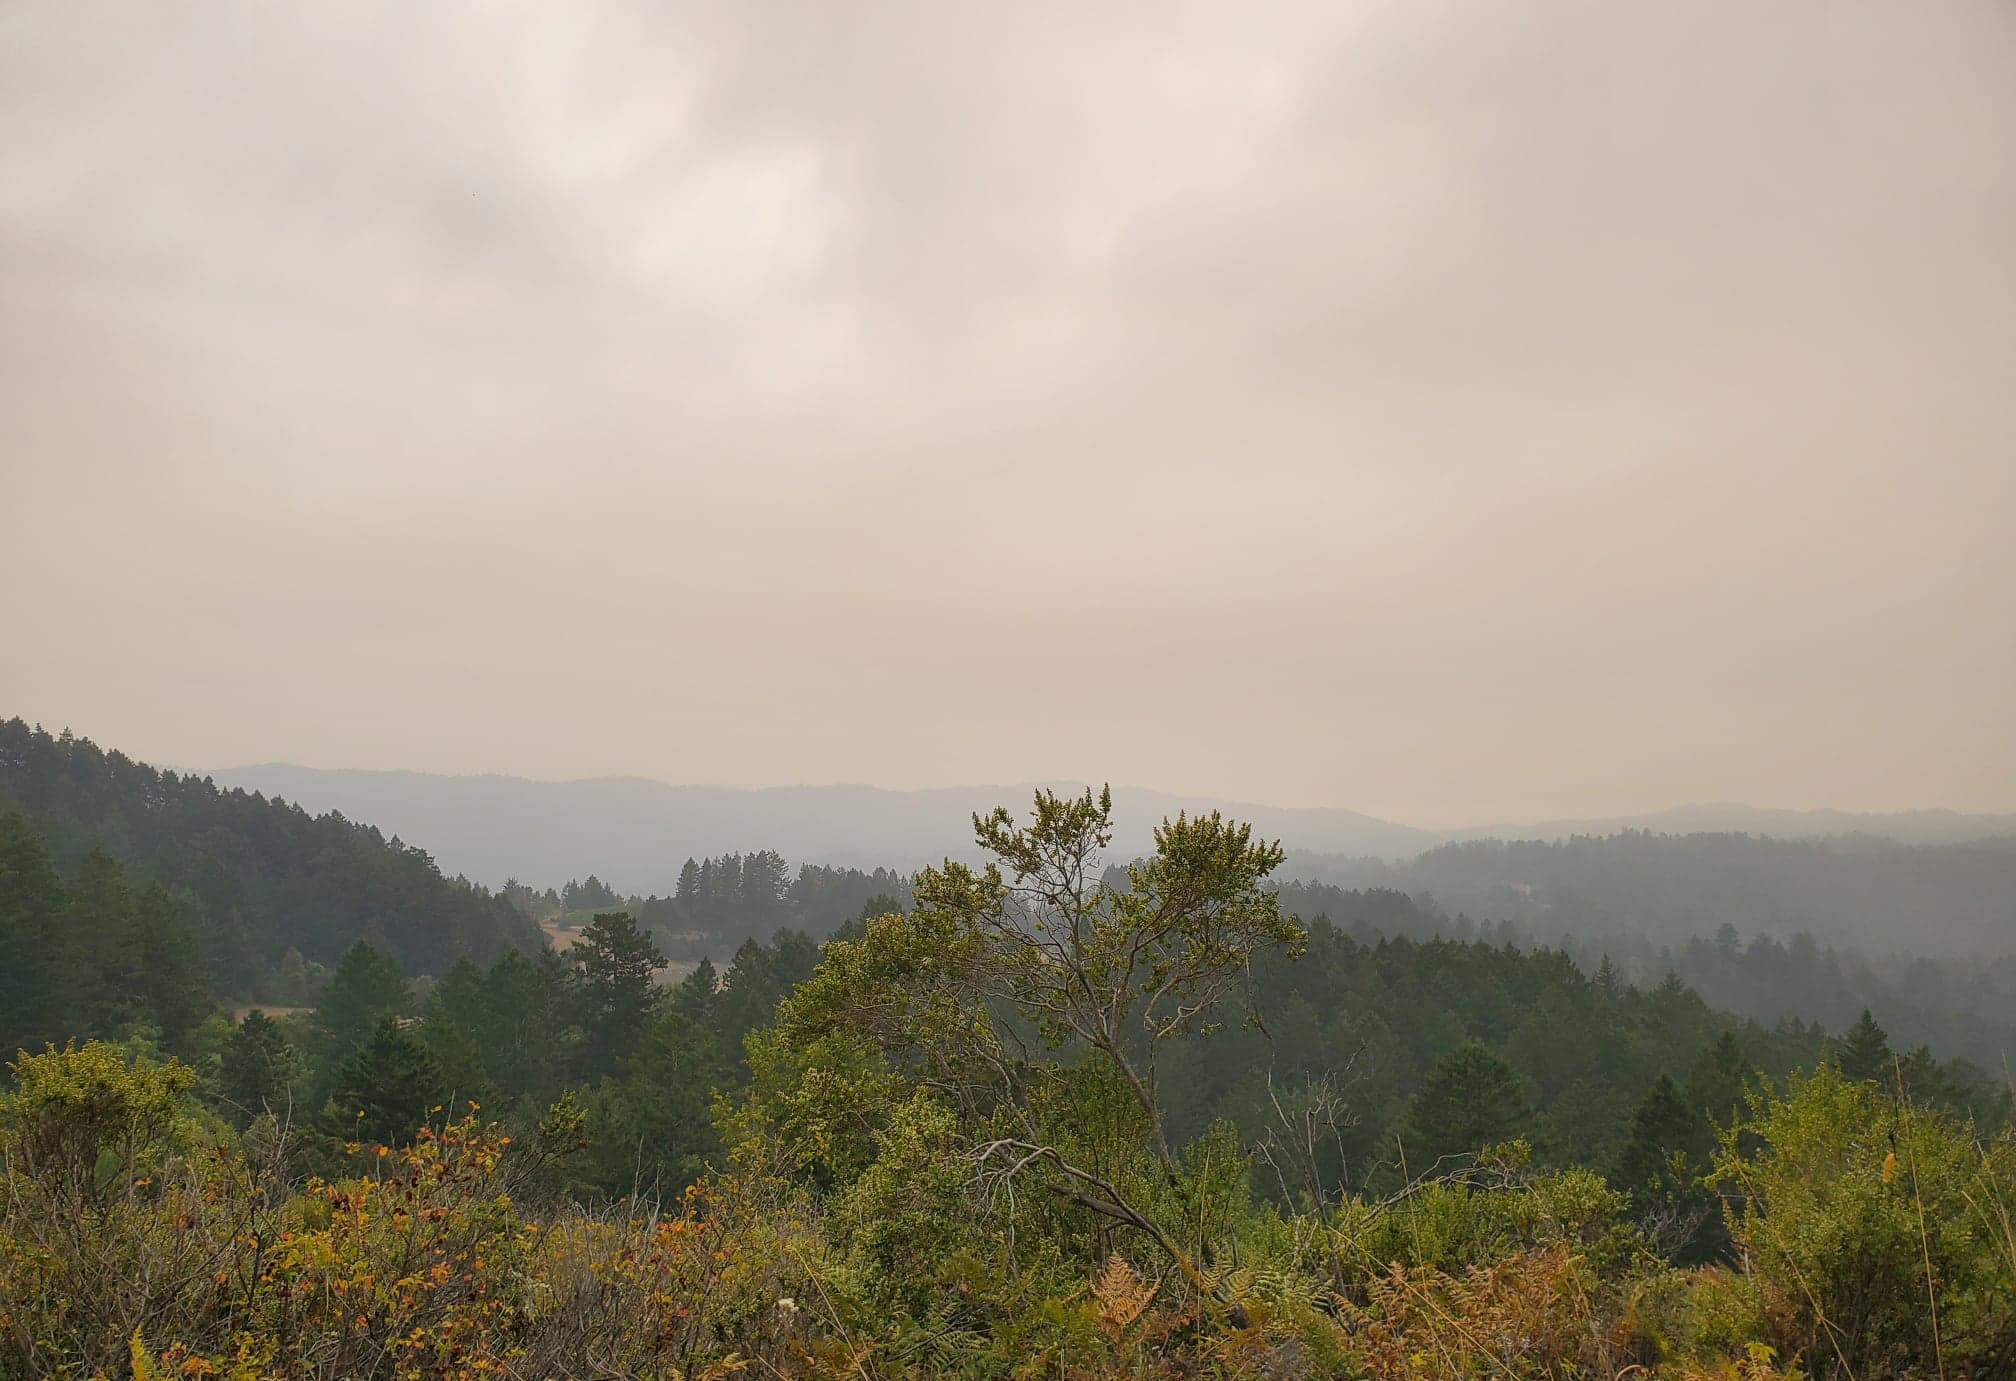 smoke over the foothills of the Santa Cruz Mountains